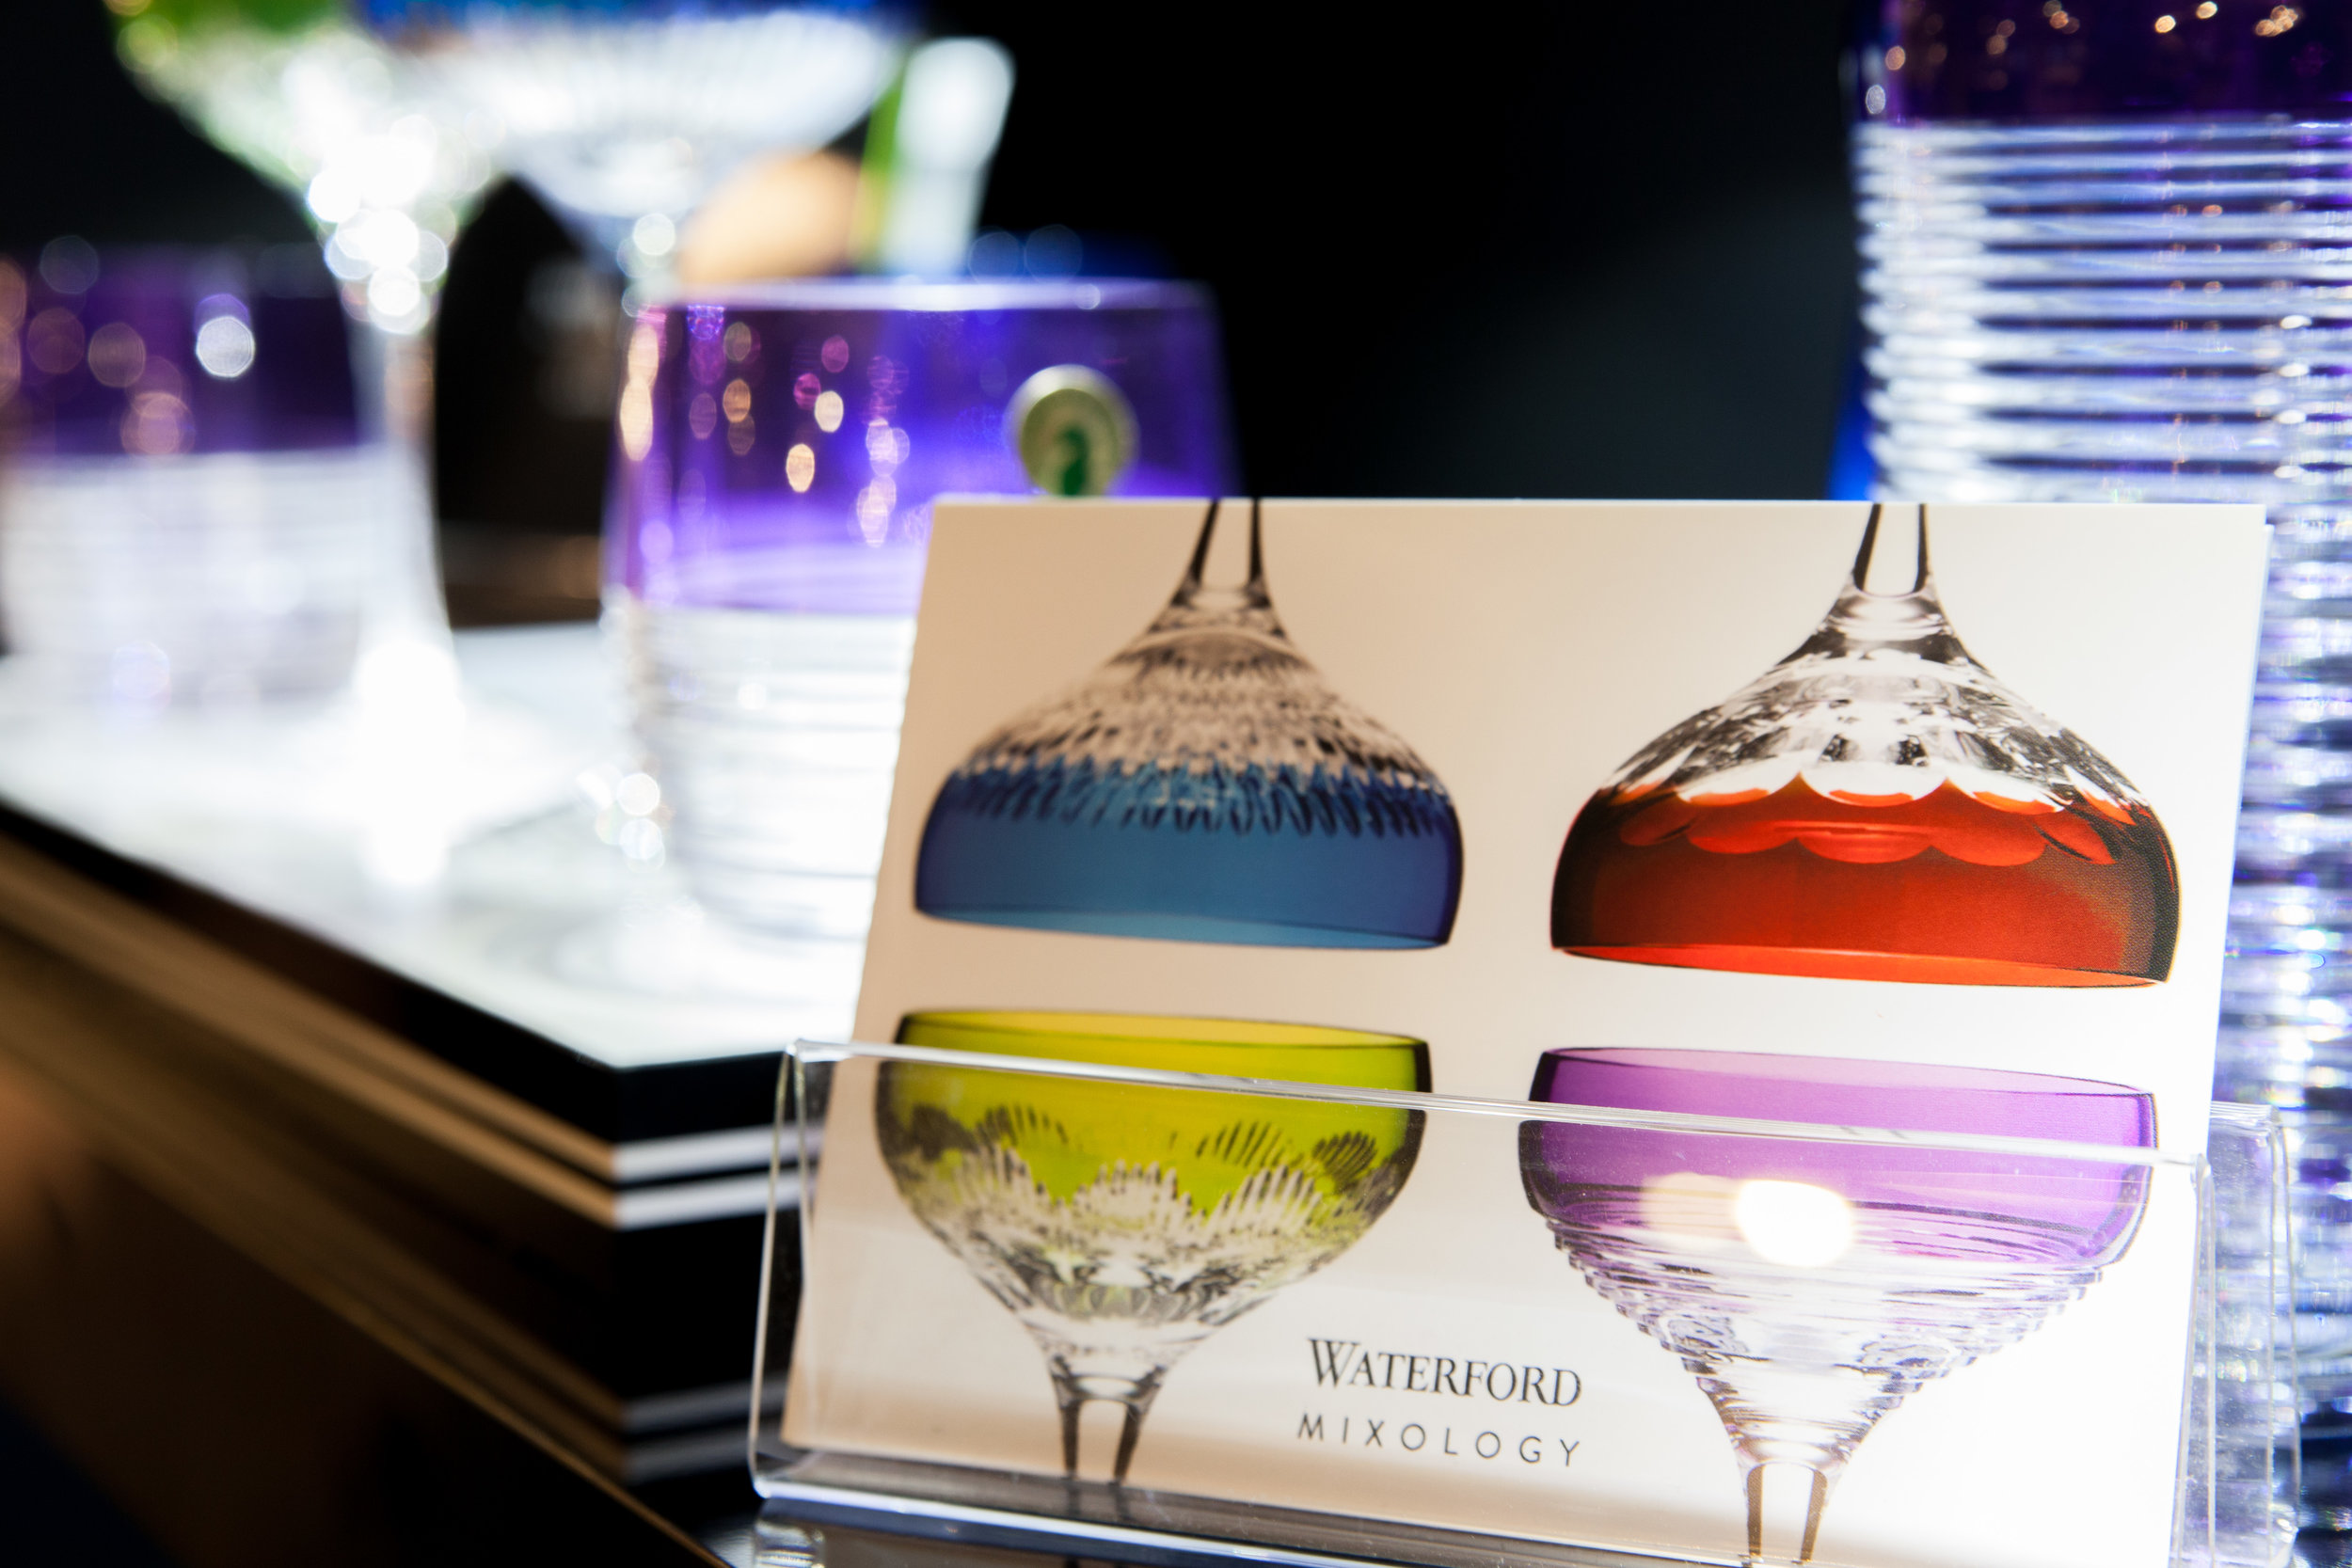 Waterford_Mixology_0038.jpg